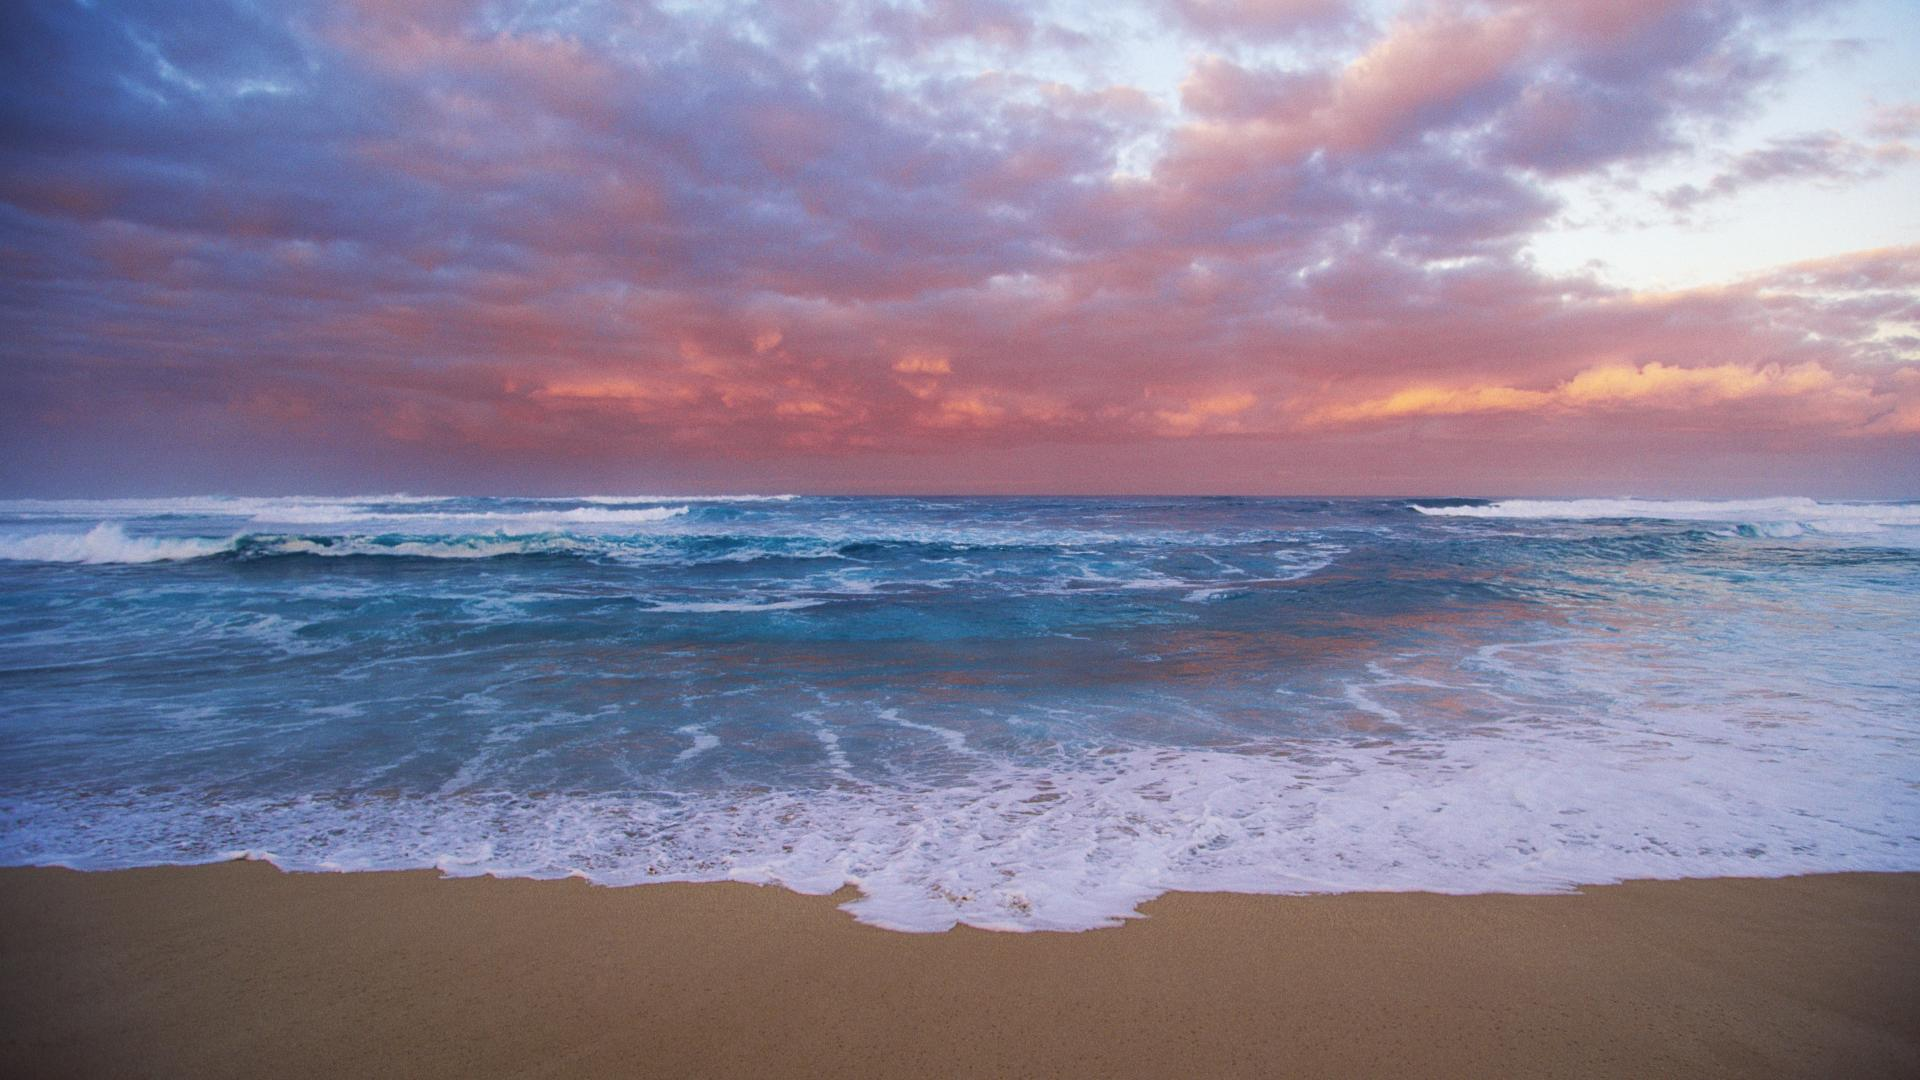 ocean sunset wallpaper desktop raviva musings from rabbi small 313